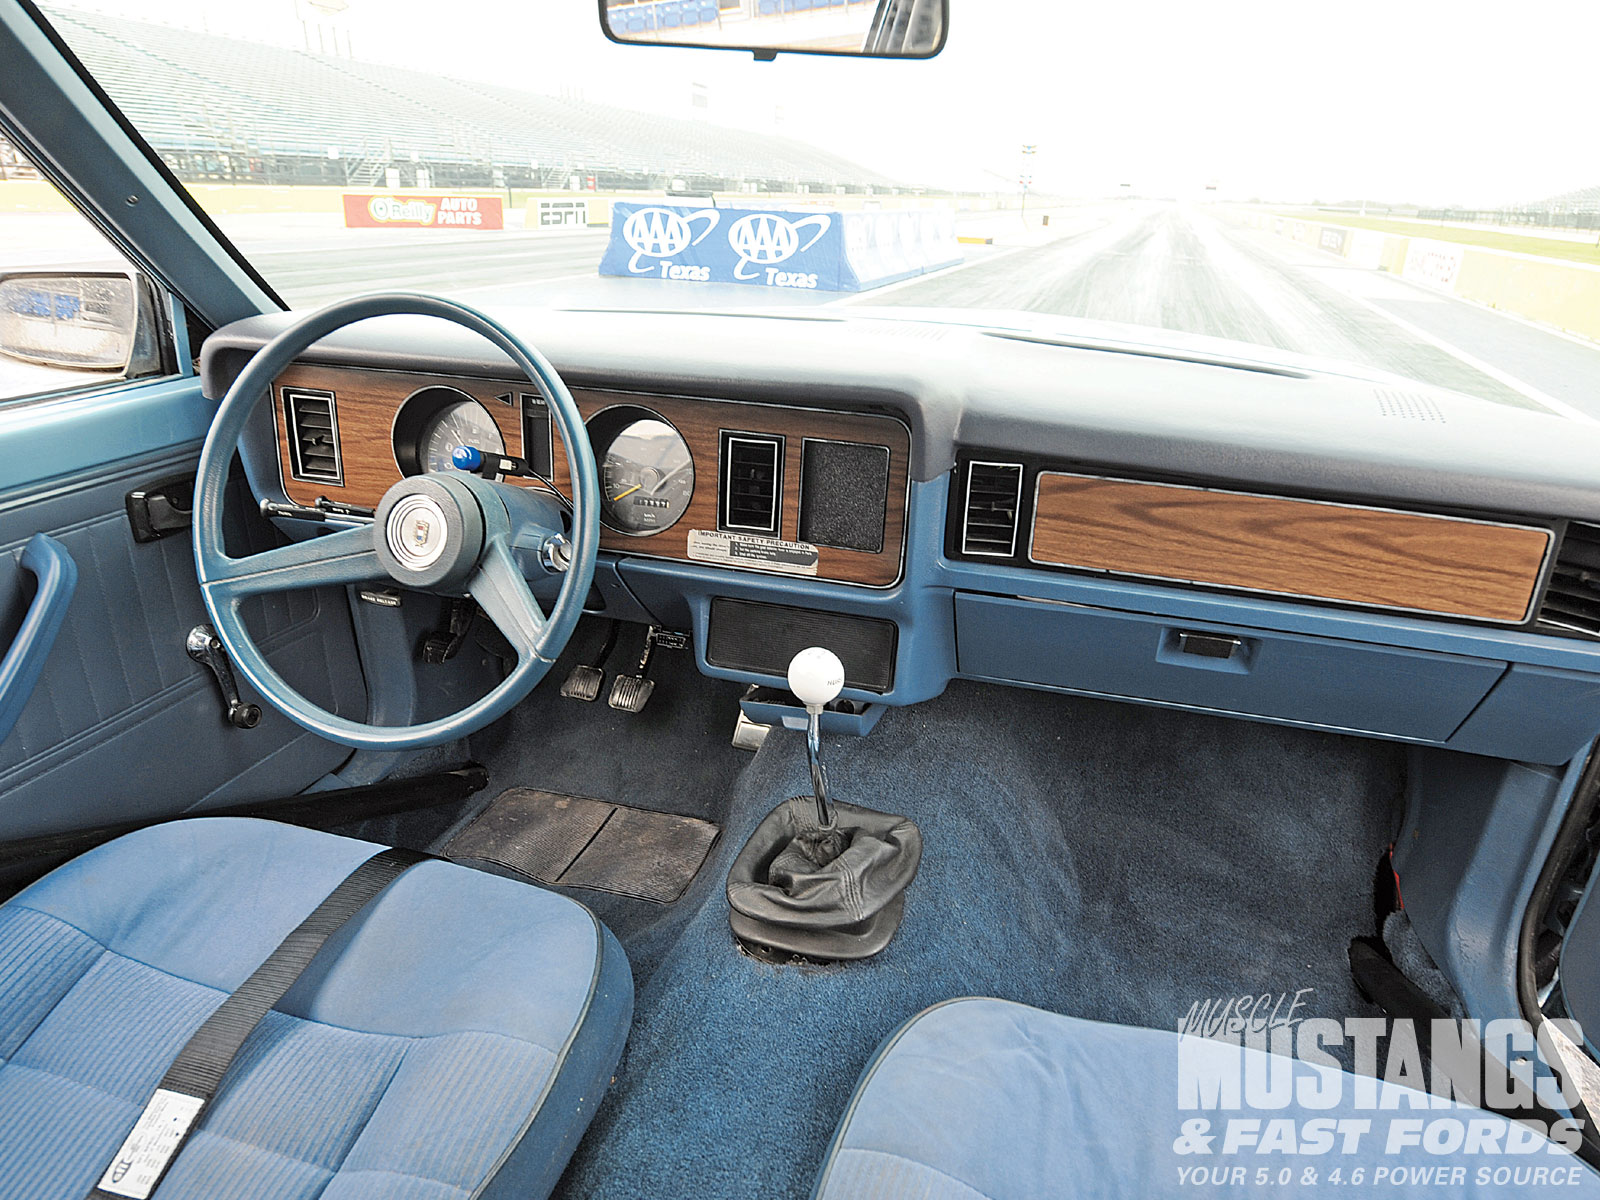 mmfp 1006 09 o 1979 ford fairmont interior [ 1600 x 1200 Pixel ]